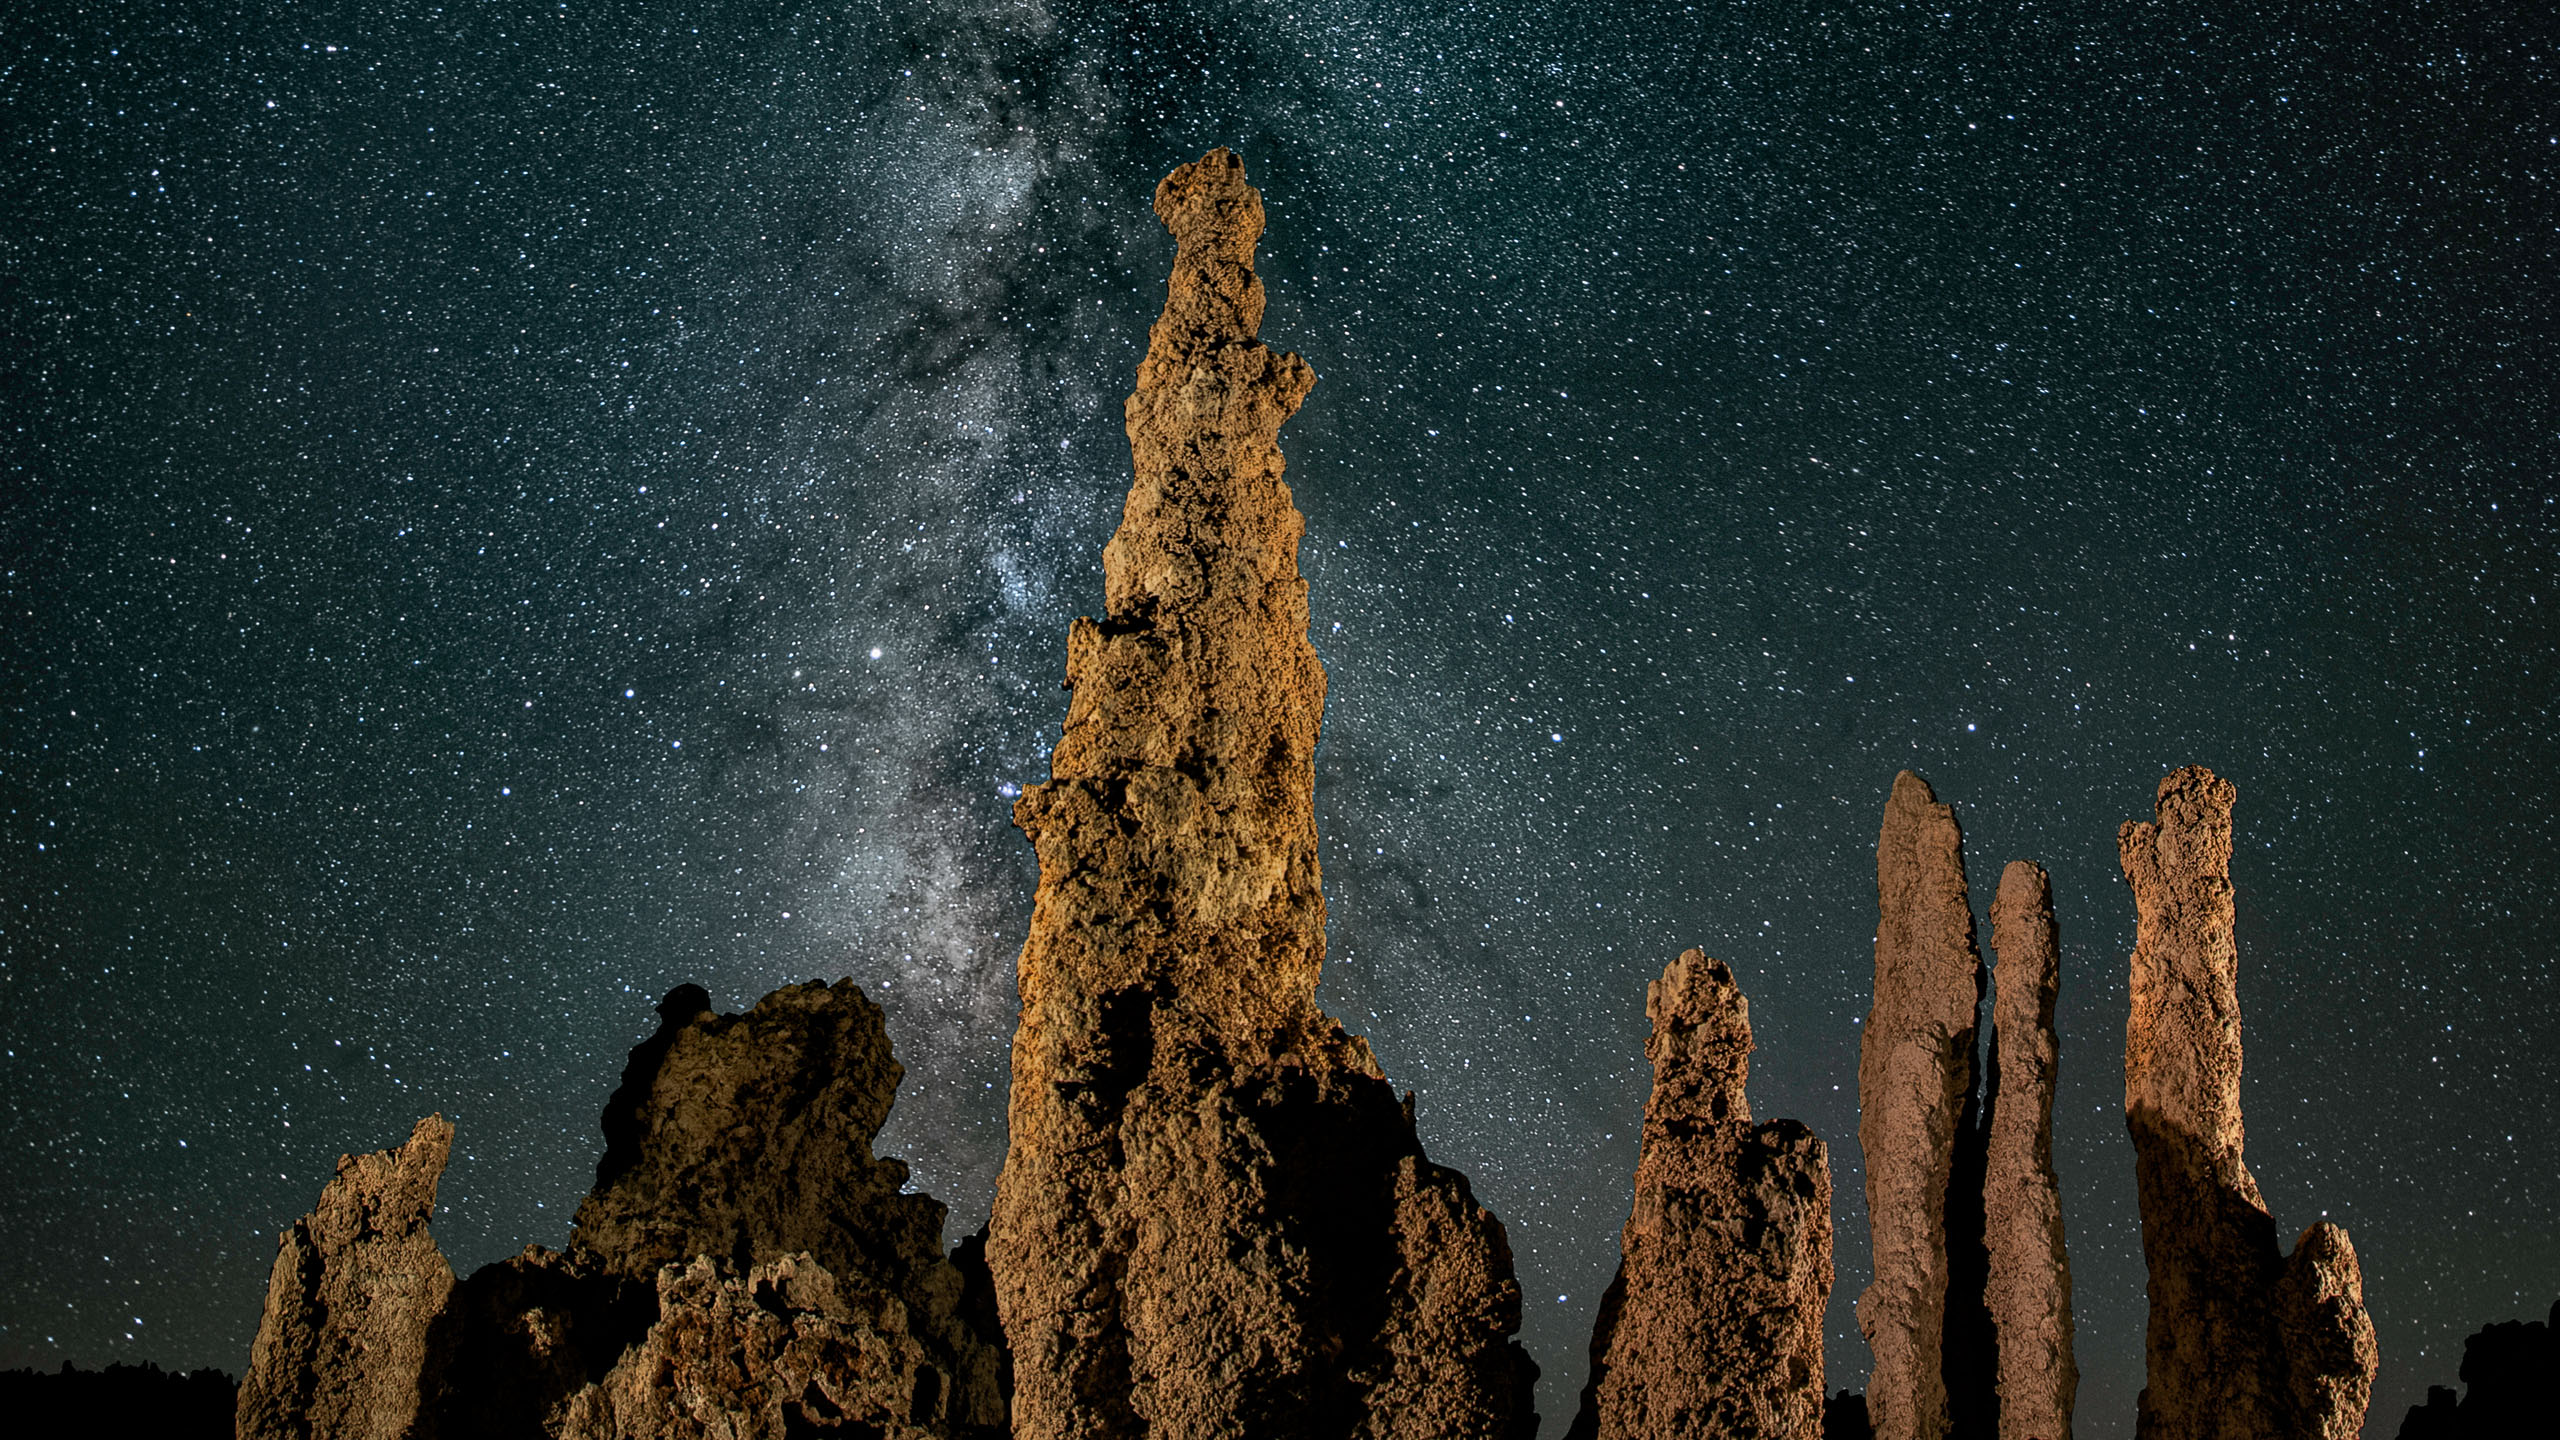 1358_kenlee_mono-lake_180614_0312_fore2mf8iso400_30stacked-15sf28ISO8000_long-tufa_2021-03 keystoning_2560x1440px HEADER PHOTOFOCUS